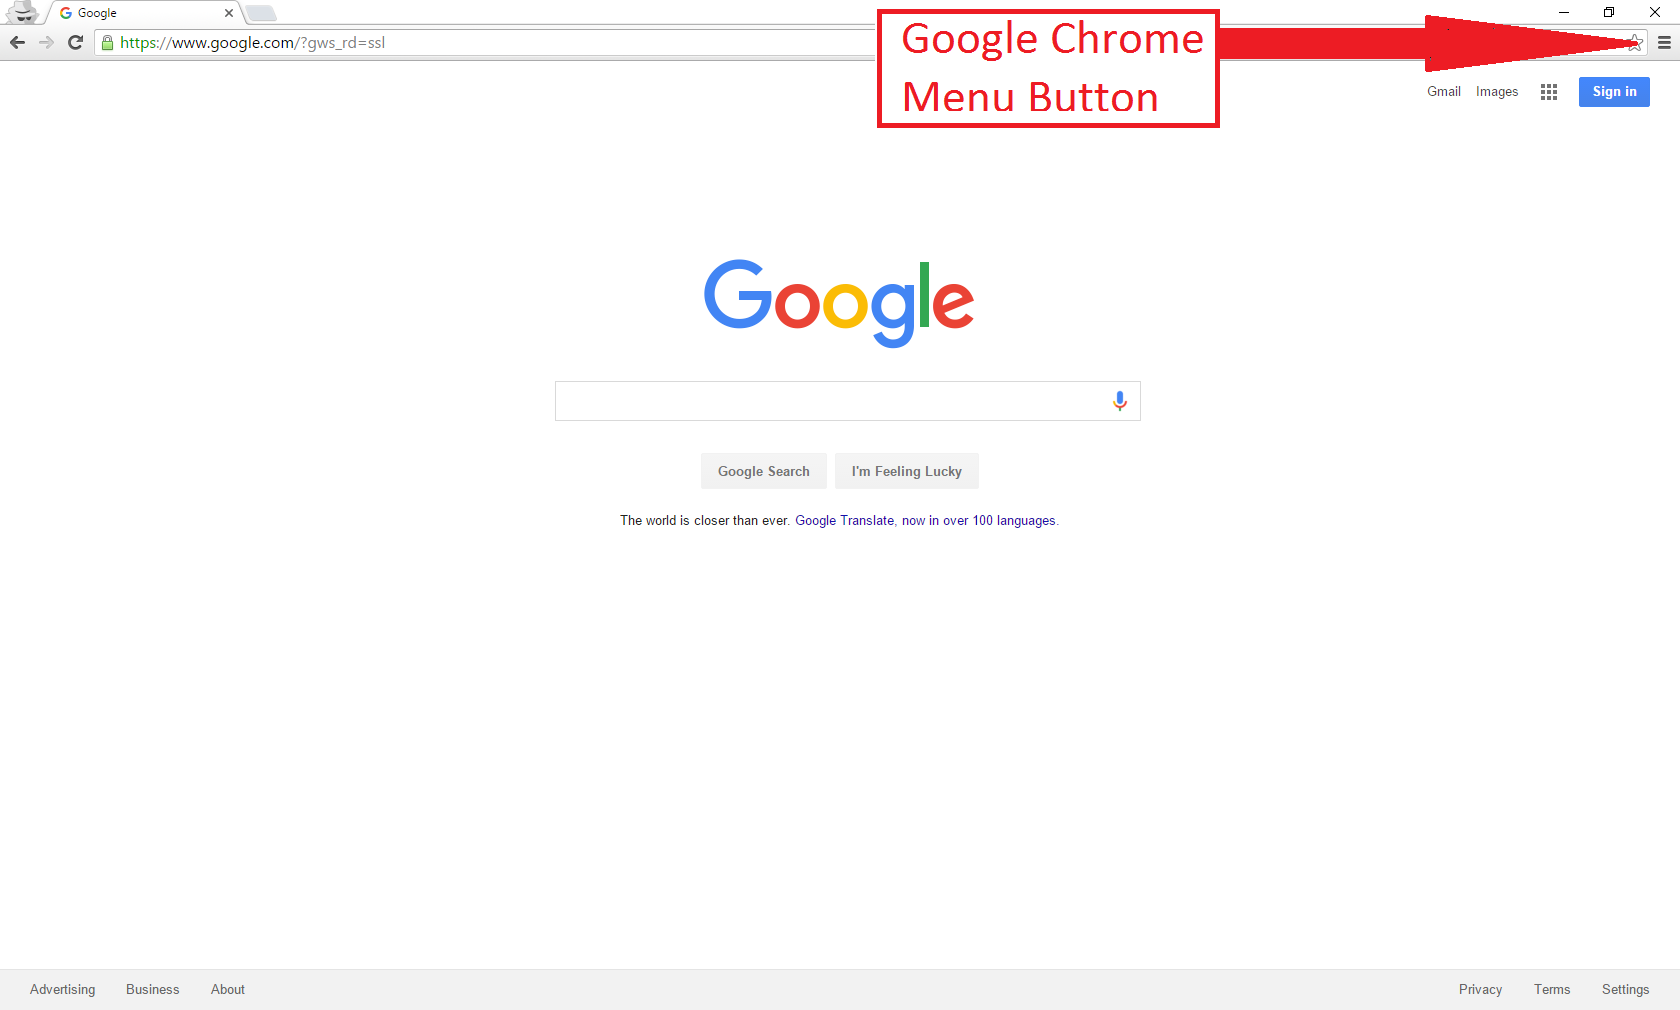 ChromeMenuButton